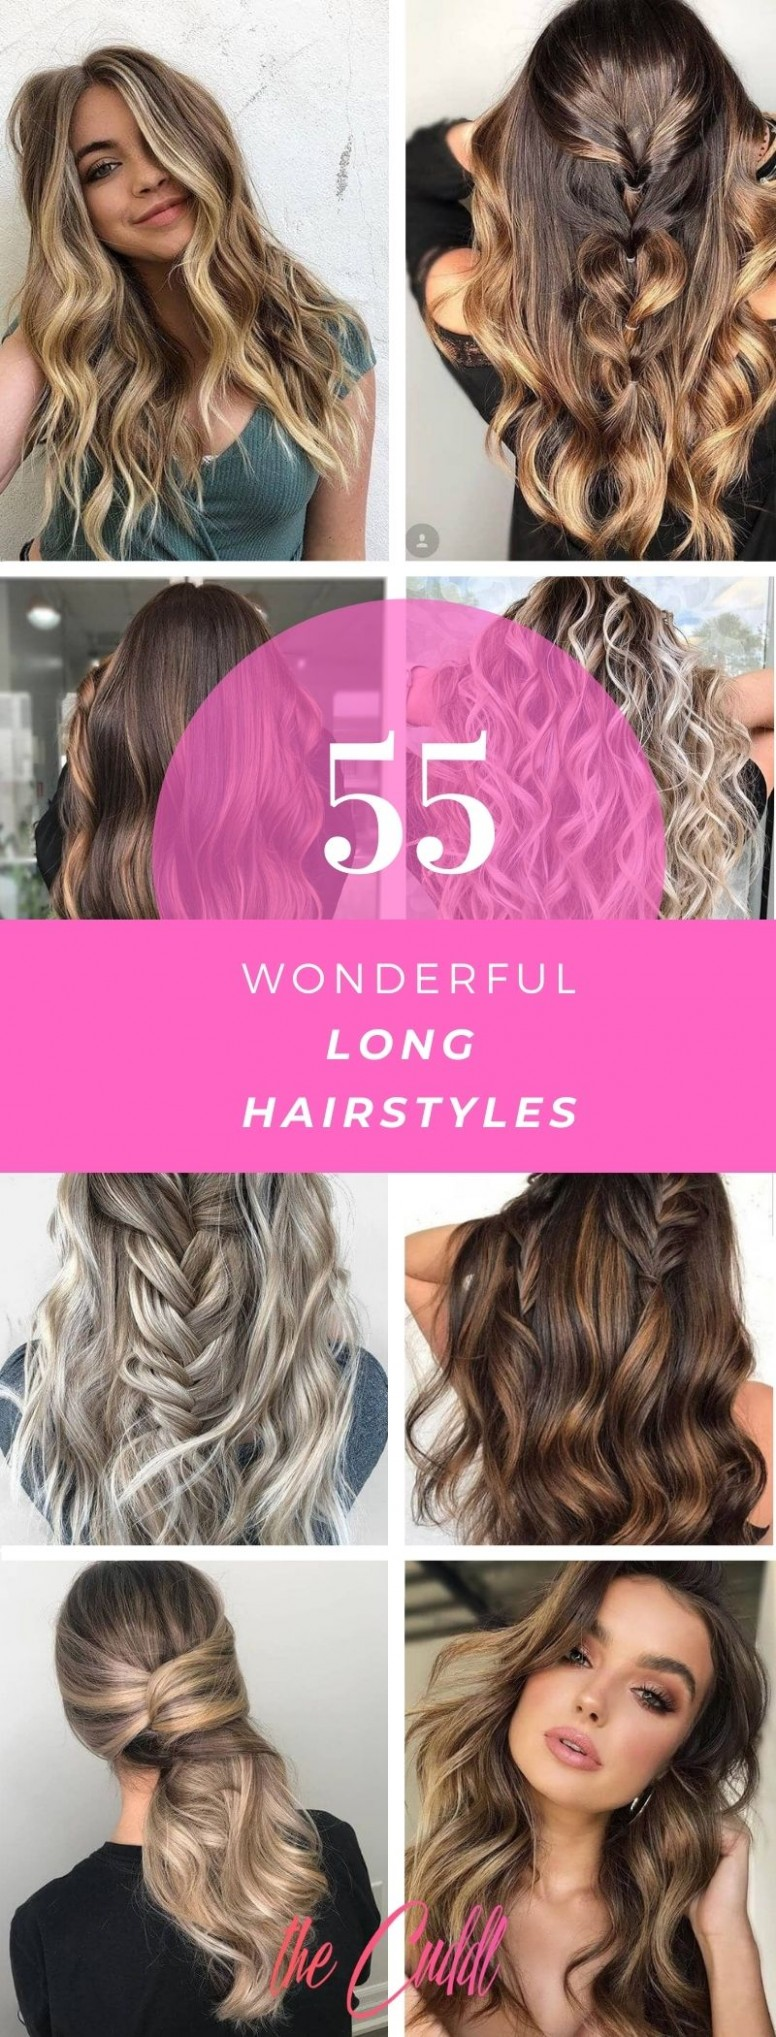 9 Insanely Hot Hairstyles For Long Hair That Will Wow You In 9 Really Long Hairstyles